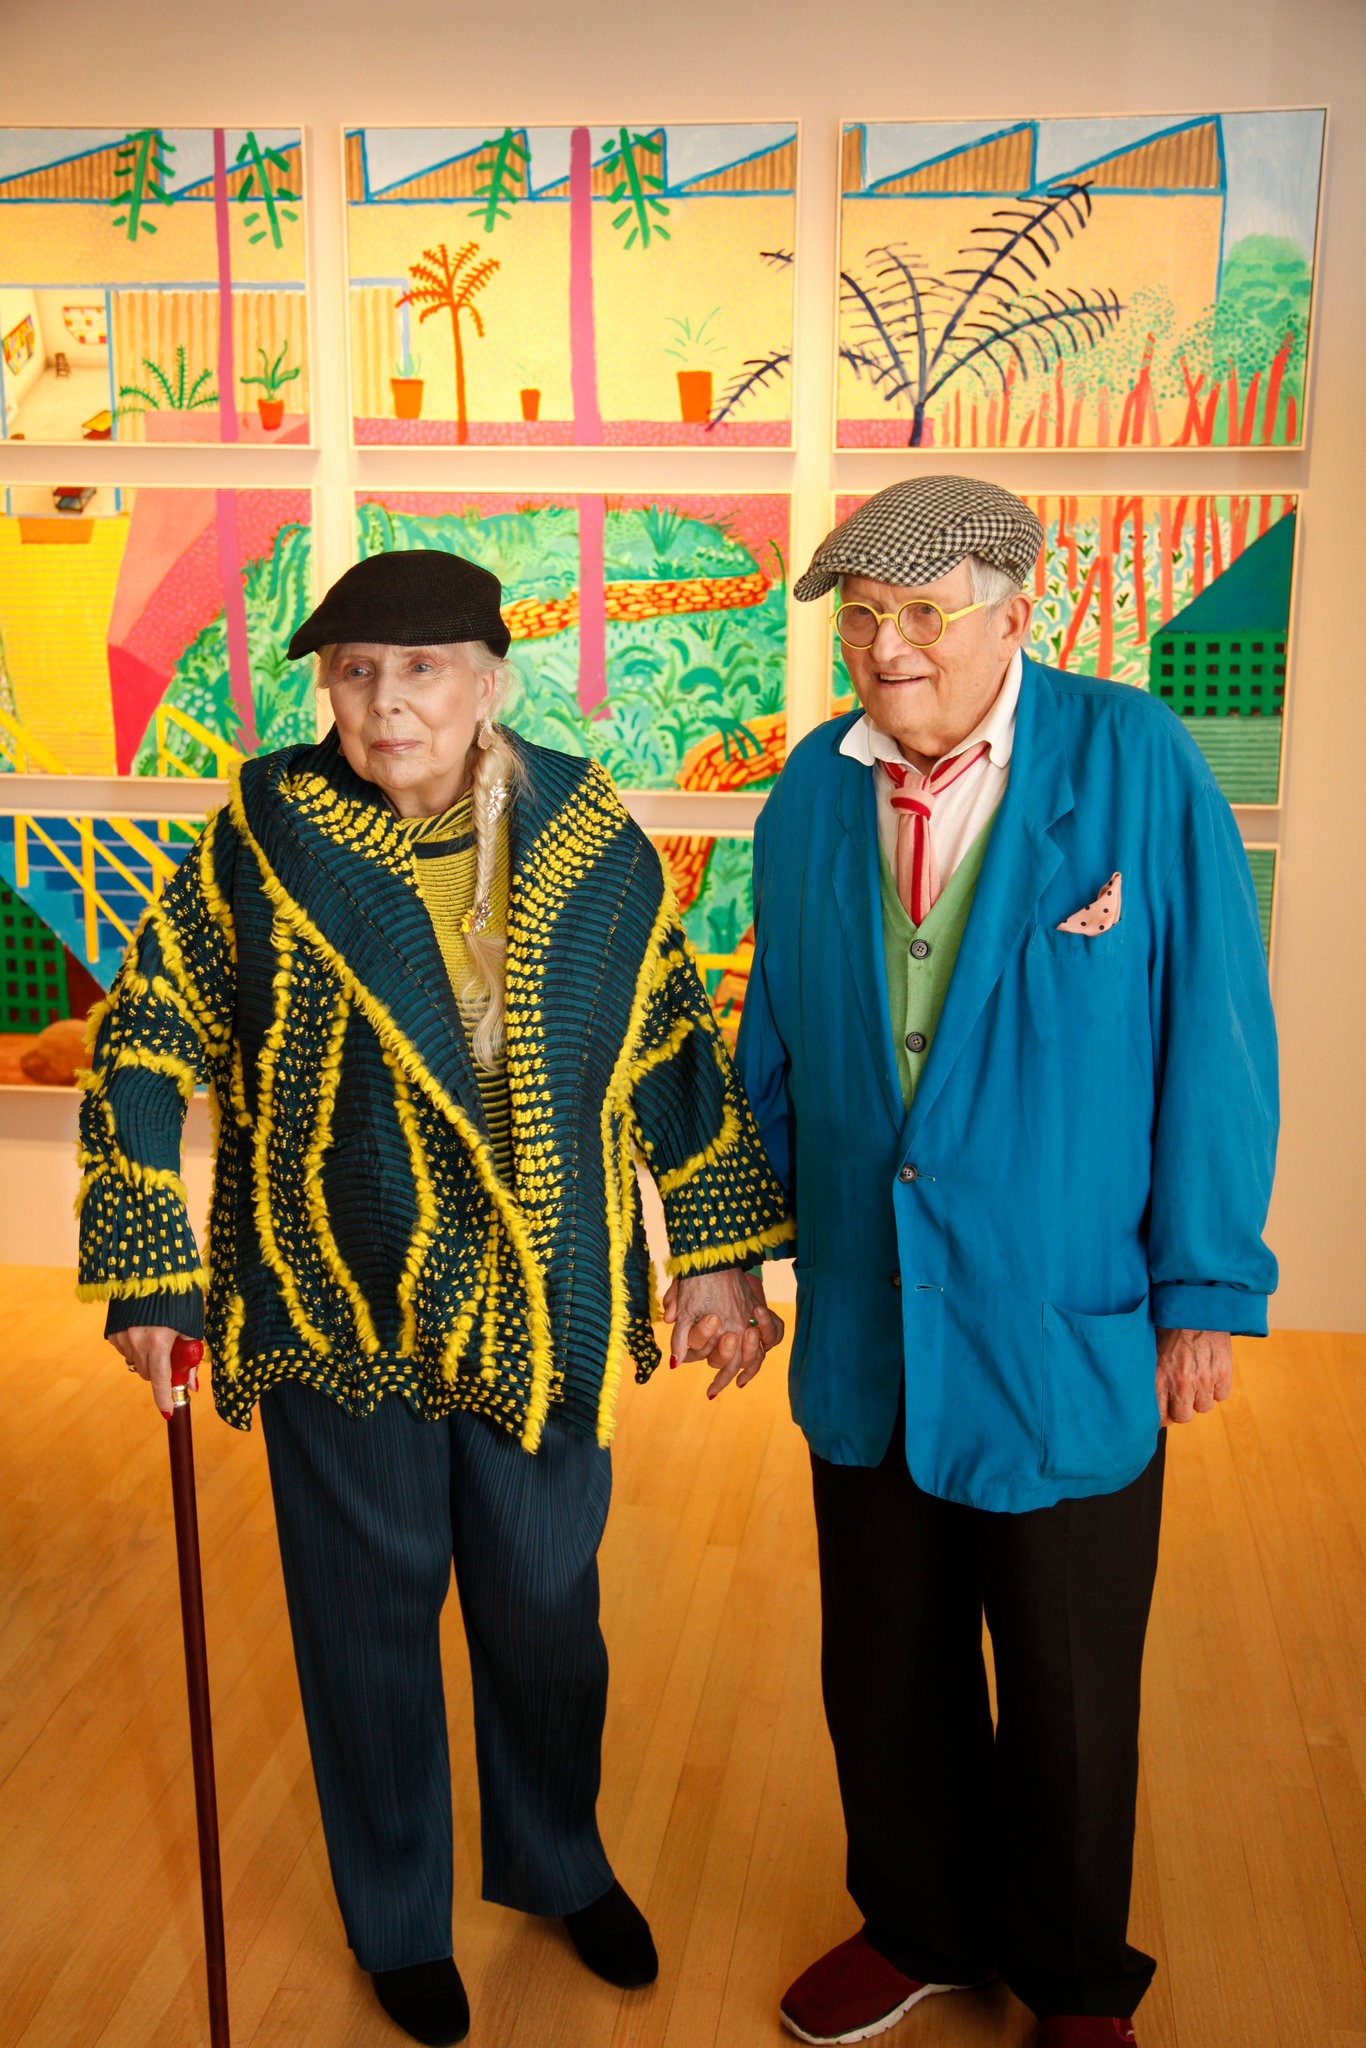 Joni Mitchell and David Hockney at L.A. Louver gallery in Los Angeles. (image by Jacob Sousa via nytimes)